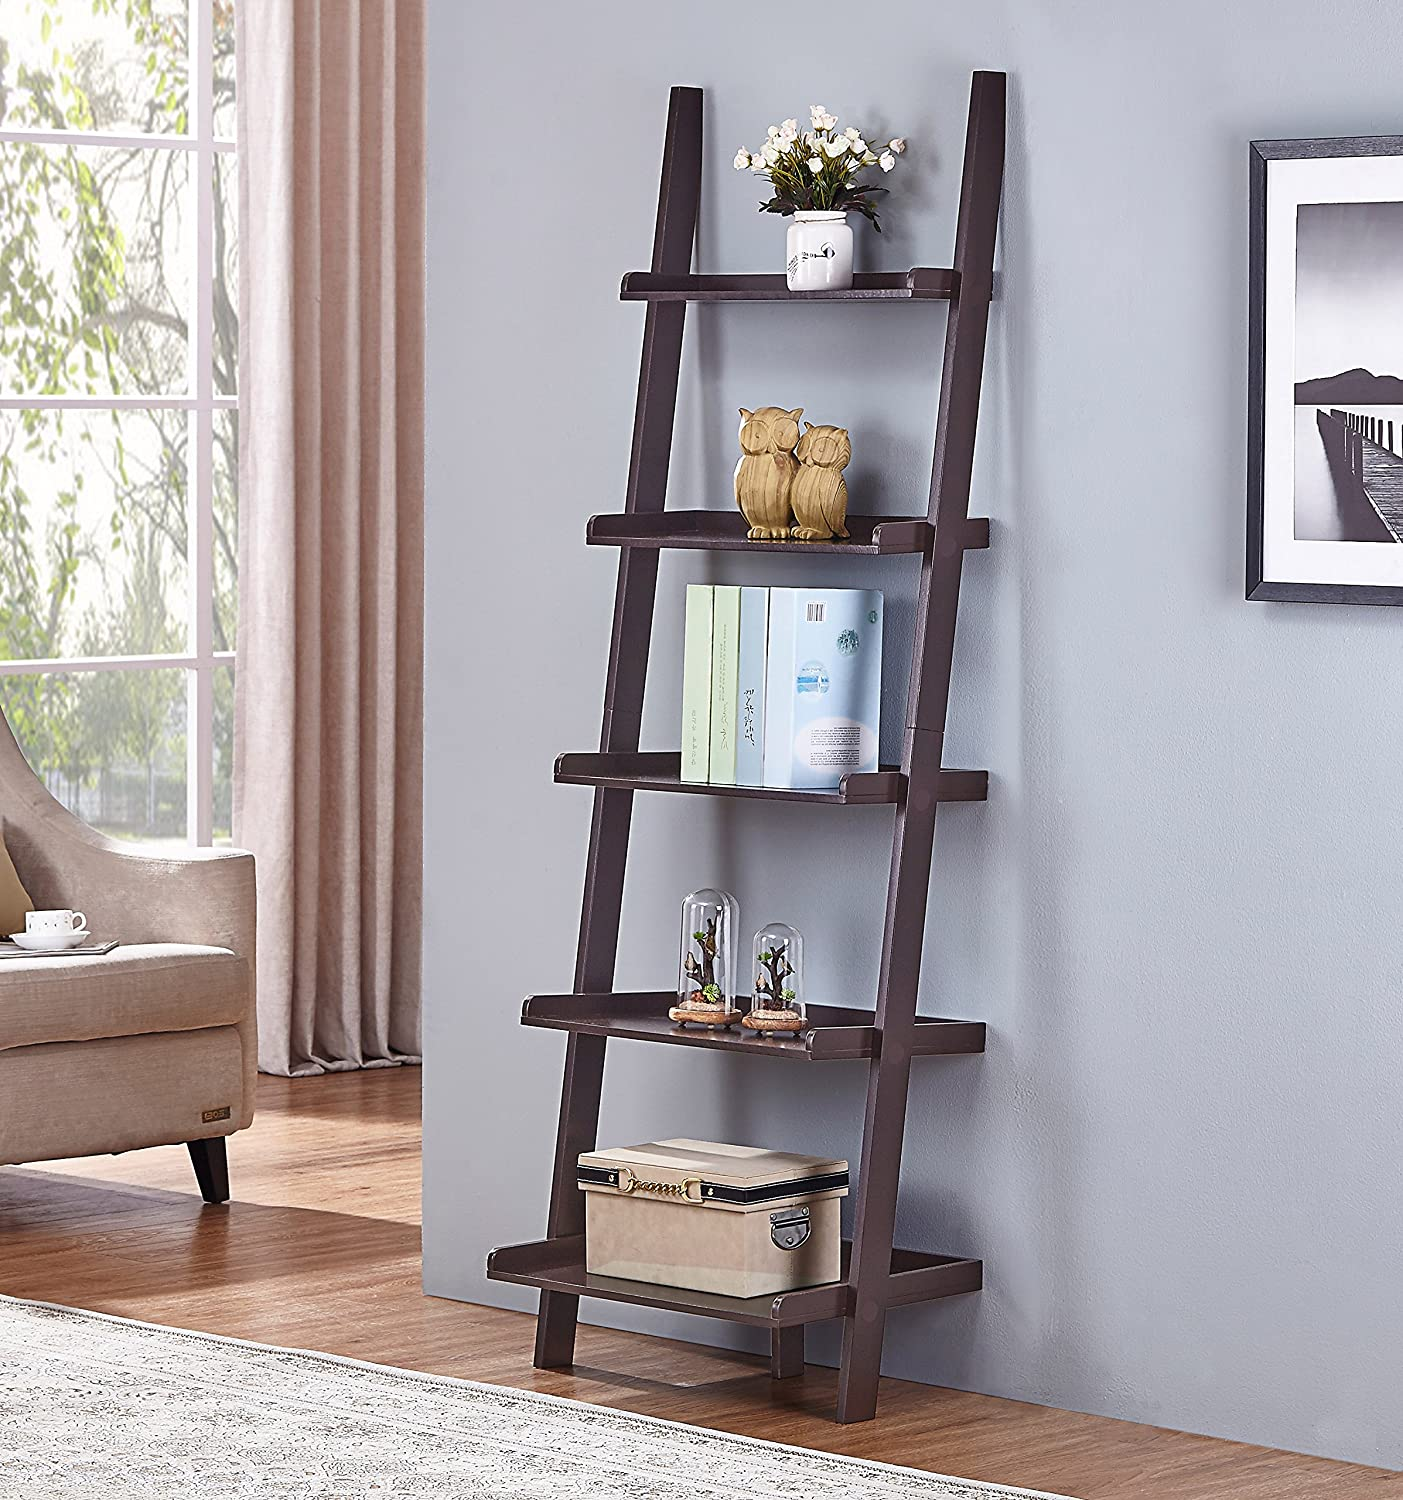 ideas ladder bookcase furniture leaning for bookcases accessories lean shelves bookshelf interior books plus shelf slanted ga decoration angled acrylic engaging indulging espresso bo to book wall